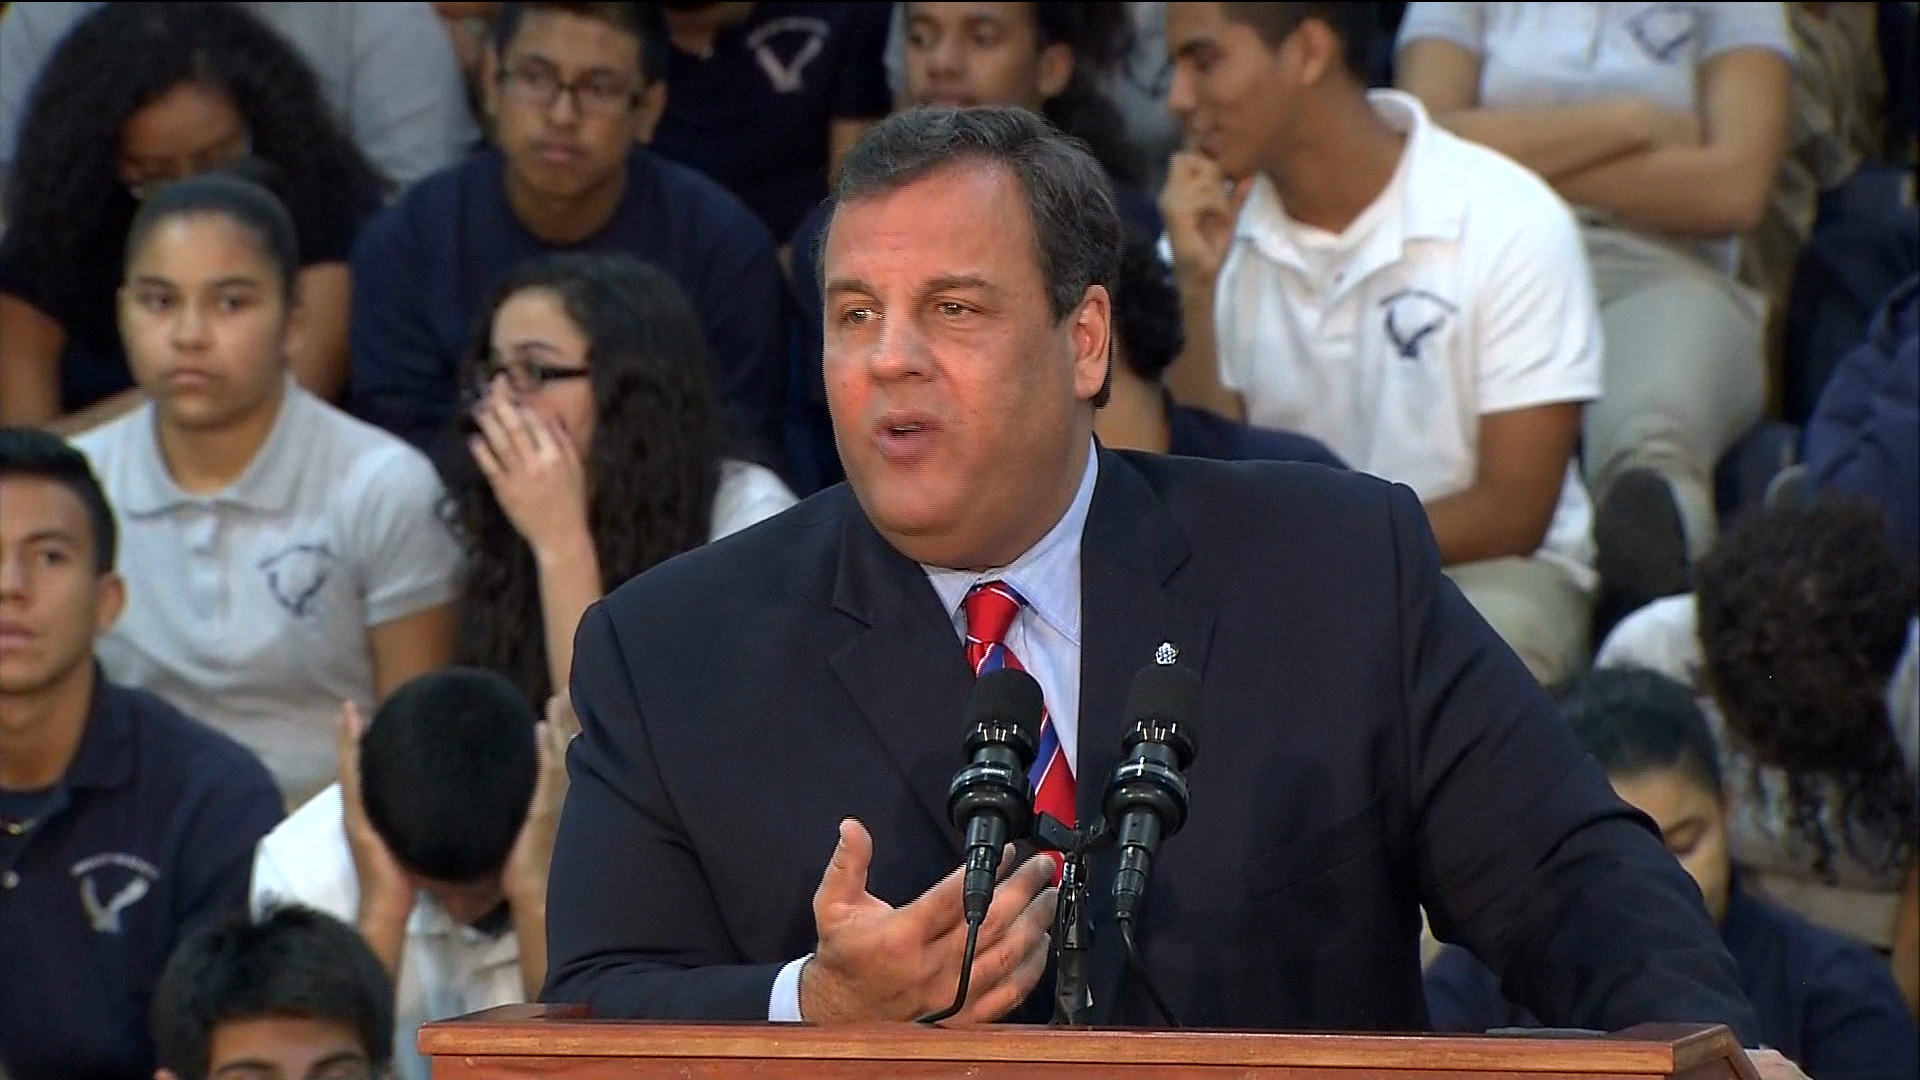 These emails could ruin Christie's 2016 hopes